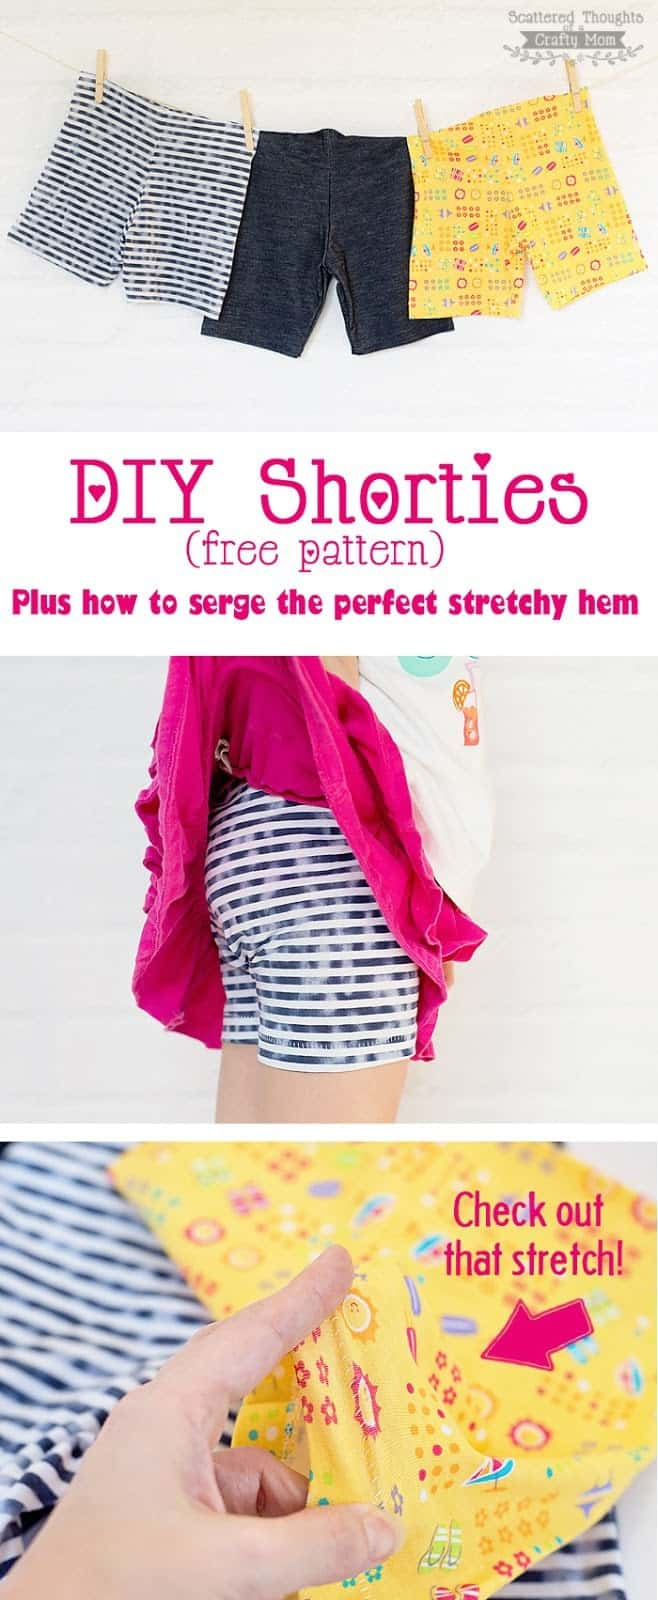 Free Shortie Pattern How To Serge A Stretchy Hem Using